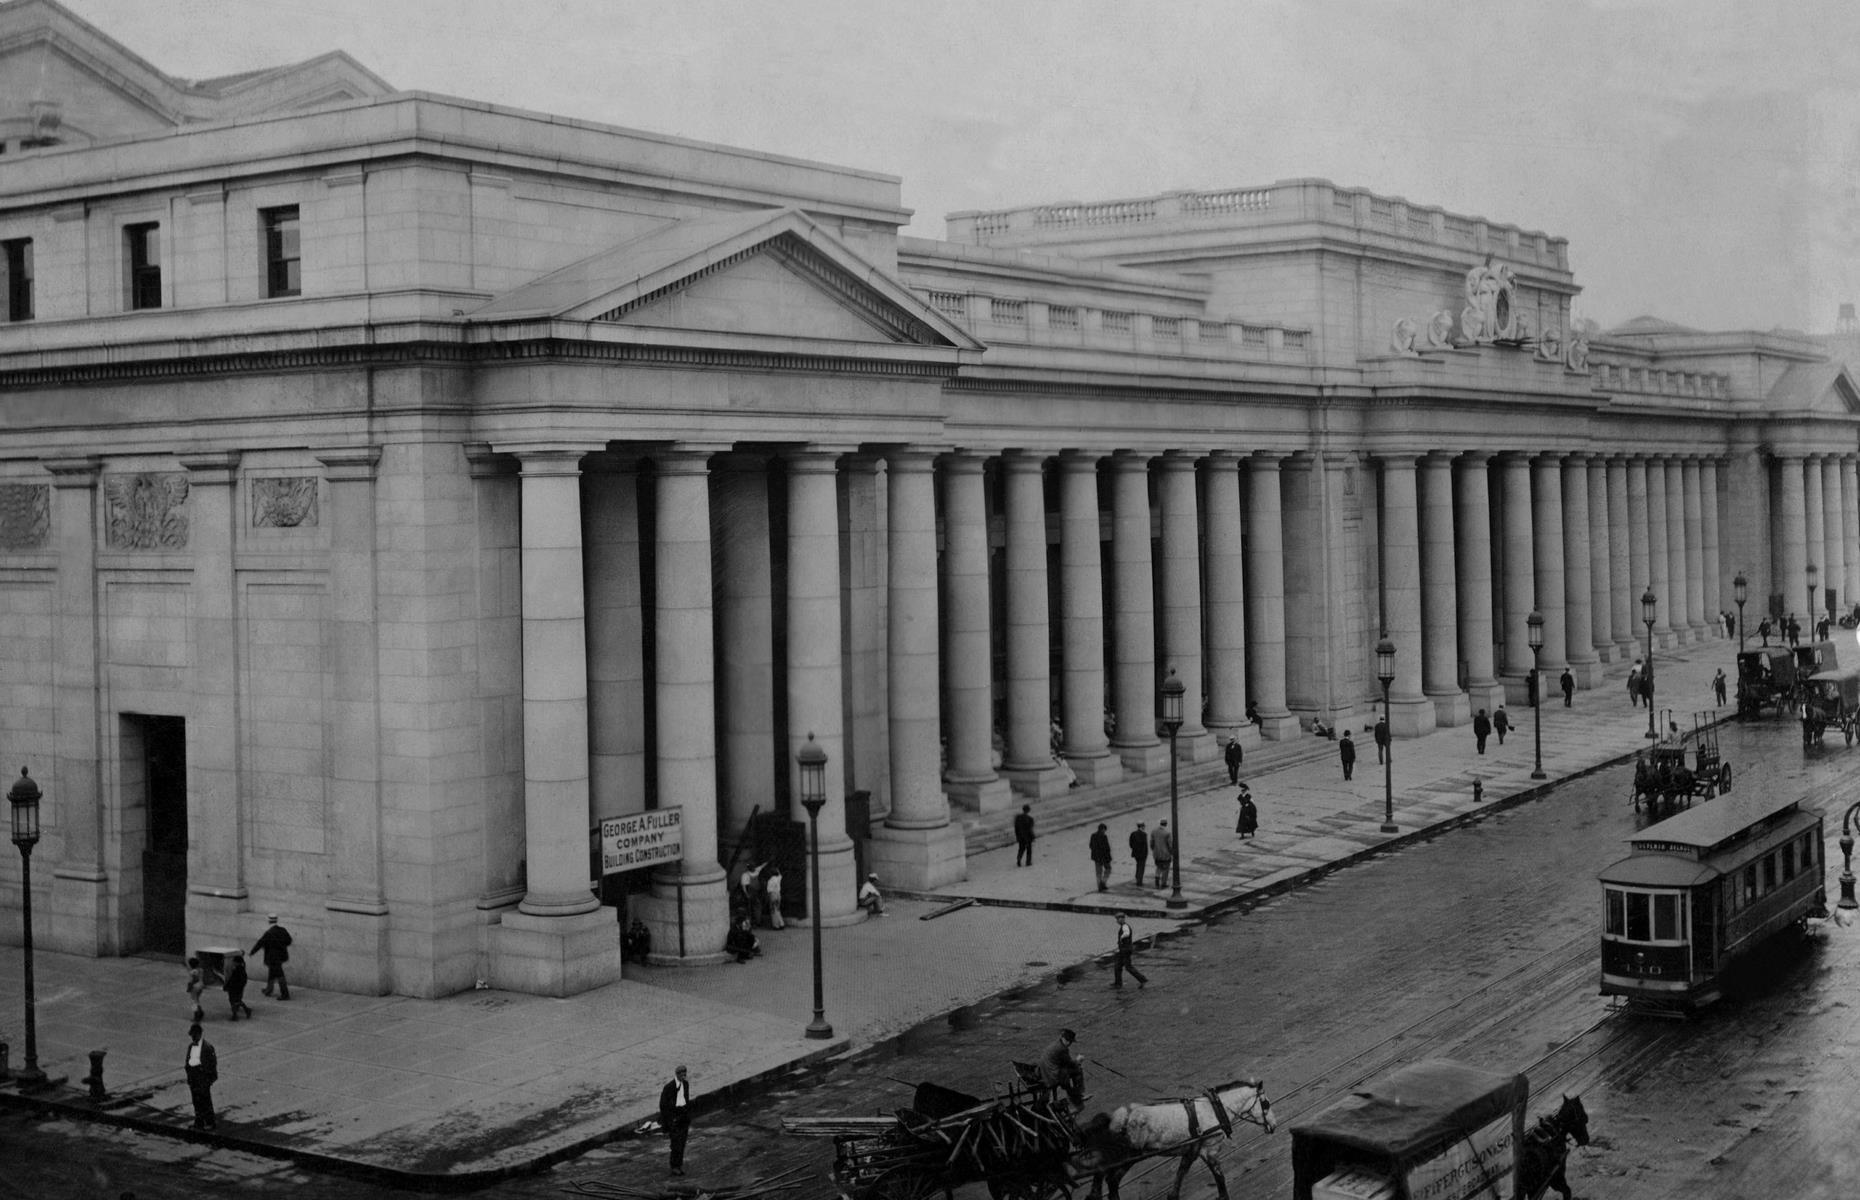 Slide 30 of 31: Today there's little argument that Grand Central Terminal is the most beautiful train station in New York City – but in the 20th century it had some competition. The former Pennsylvania Station (better known as Penn Station) opened in 1910 and was designed in the Beaux-Arts style by renowned American architectural firm McKim, Mead & White. It was a masterpiece, all grand columns, arches, murals and statues.